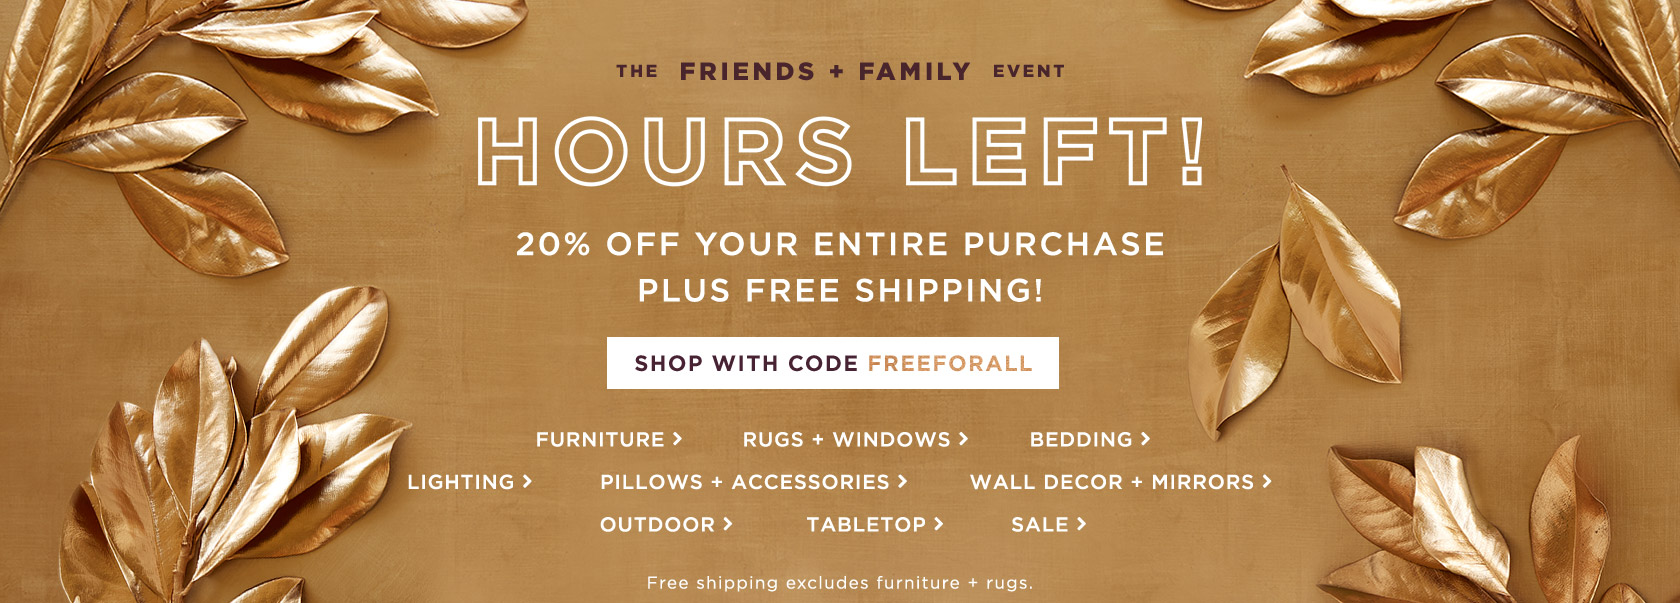 Hours Left! The Friends + Family Event - 20% Off Your Entire Purchase + Free Shipping With Code FREEFORALL